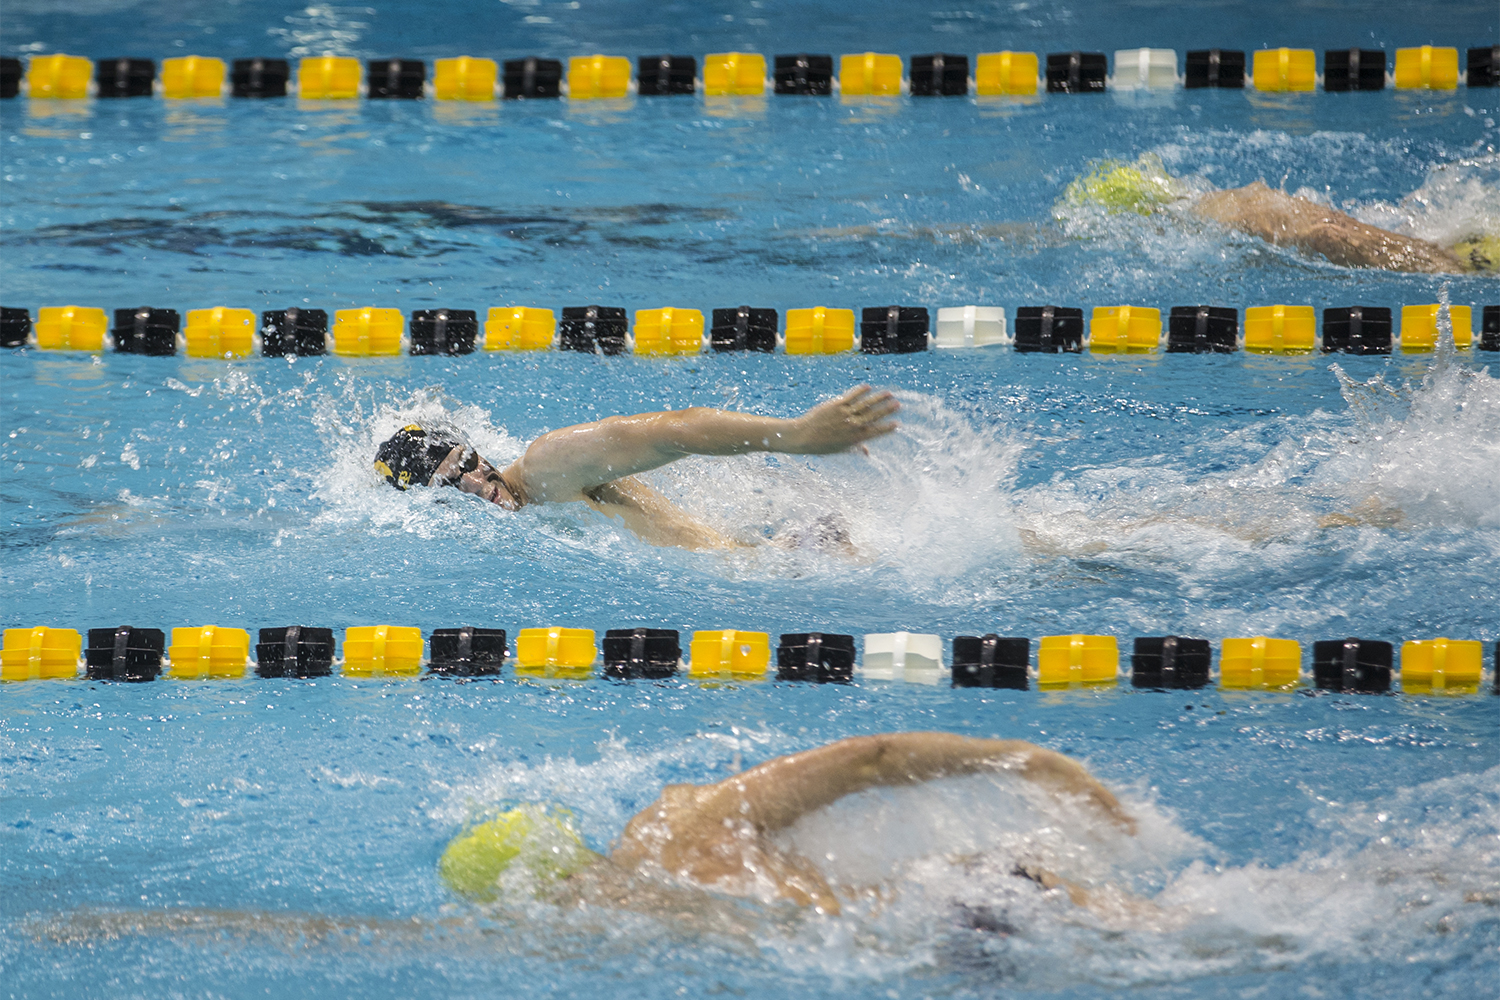 Swimmers+compete+in+the+200+meter+freestyle+race+during+the+Iowa+Swimming+and+Diving+Intrasquad+Meet+at+the+Campus+Recreation+and+Wellness+Center+on+Saturday%2C+September+29%2C+2018.+